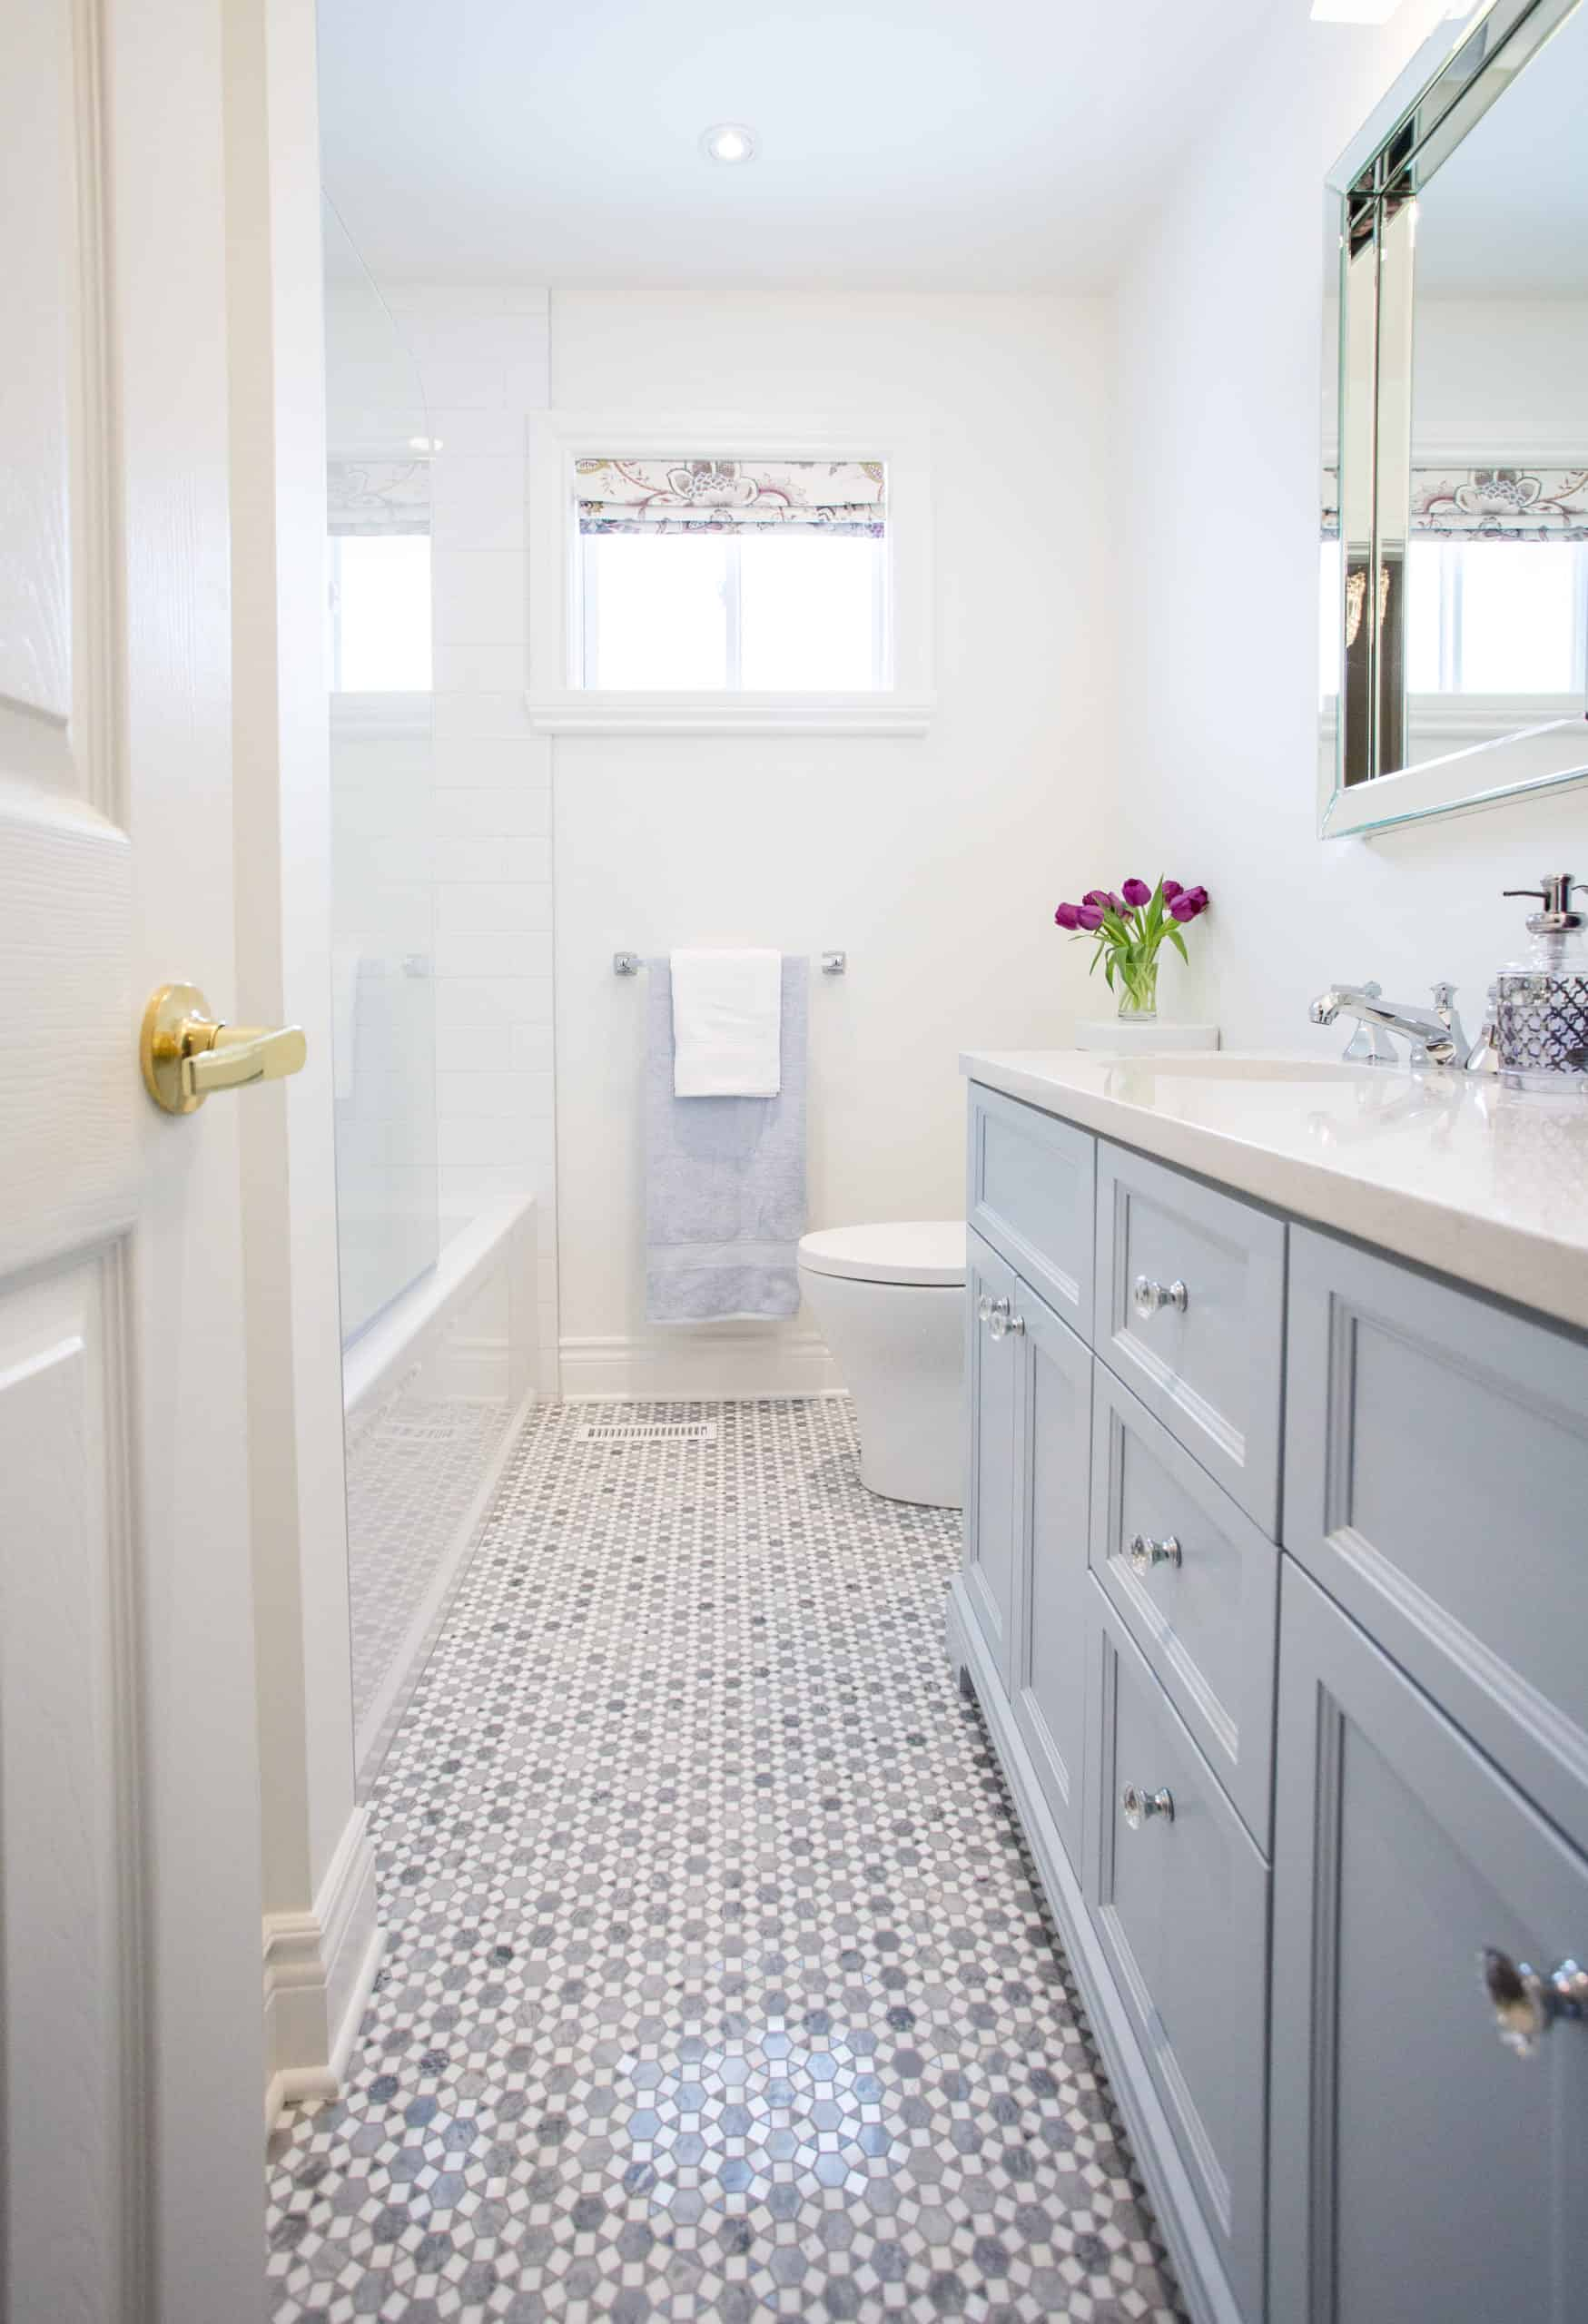 Bright white vanity with a marble countertop